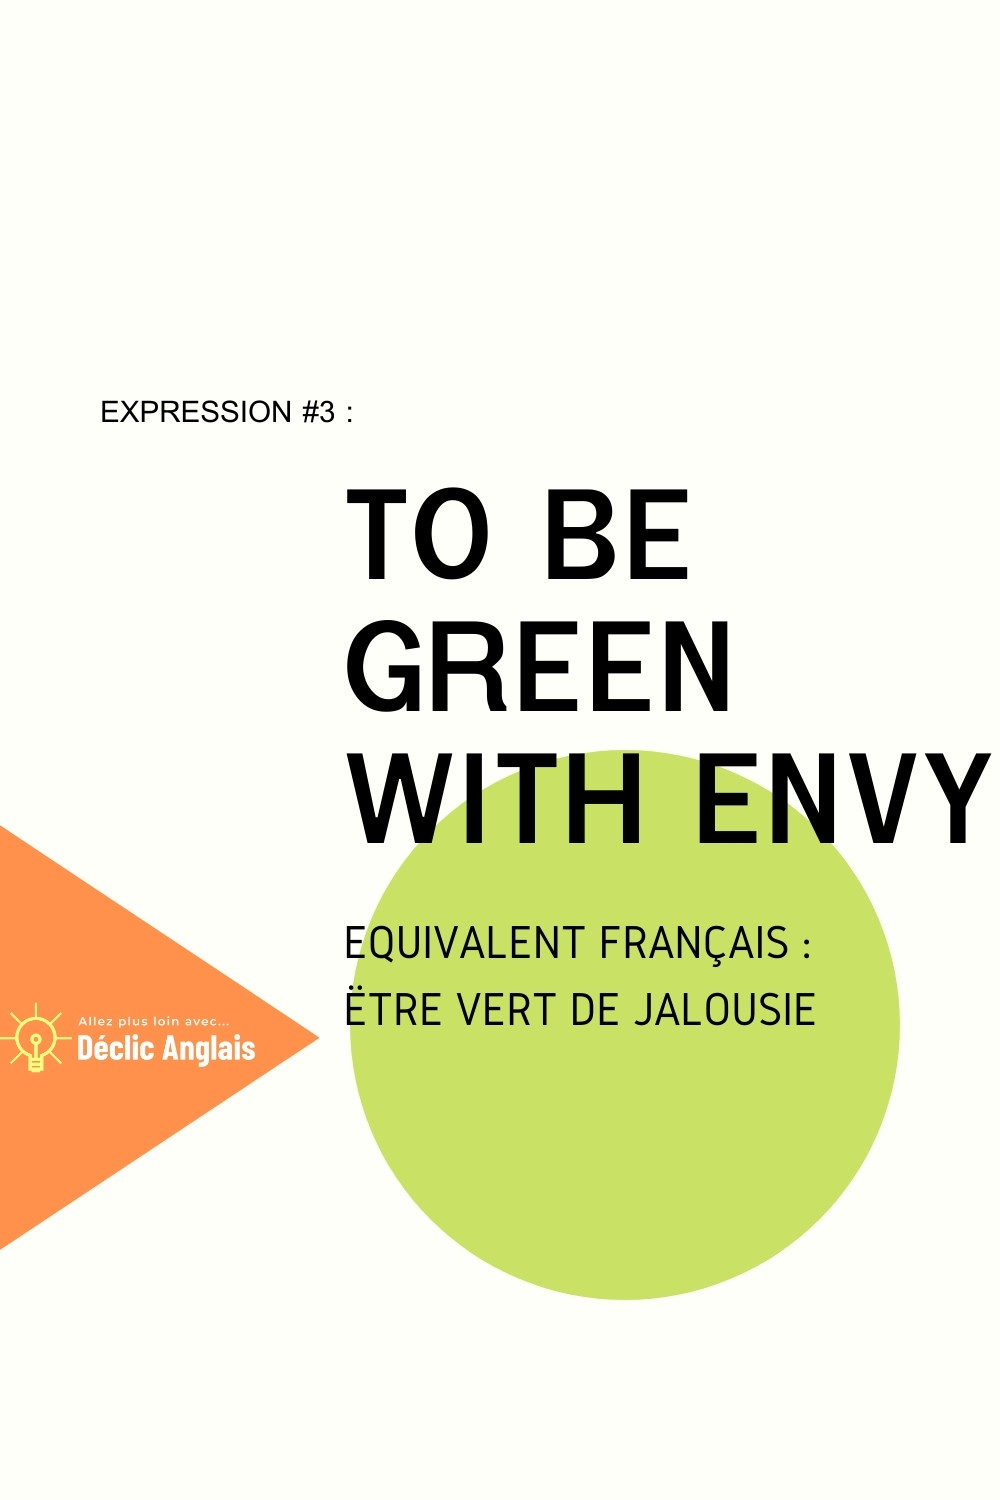 English-expression-to-be-green-with-envy-explained-in-french